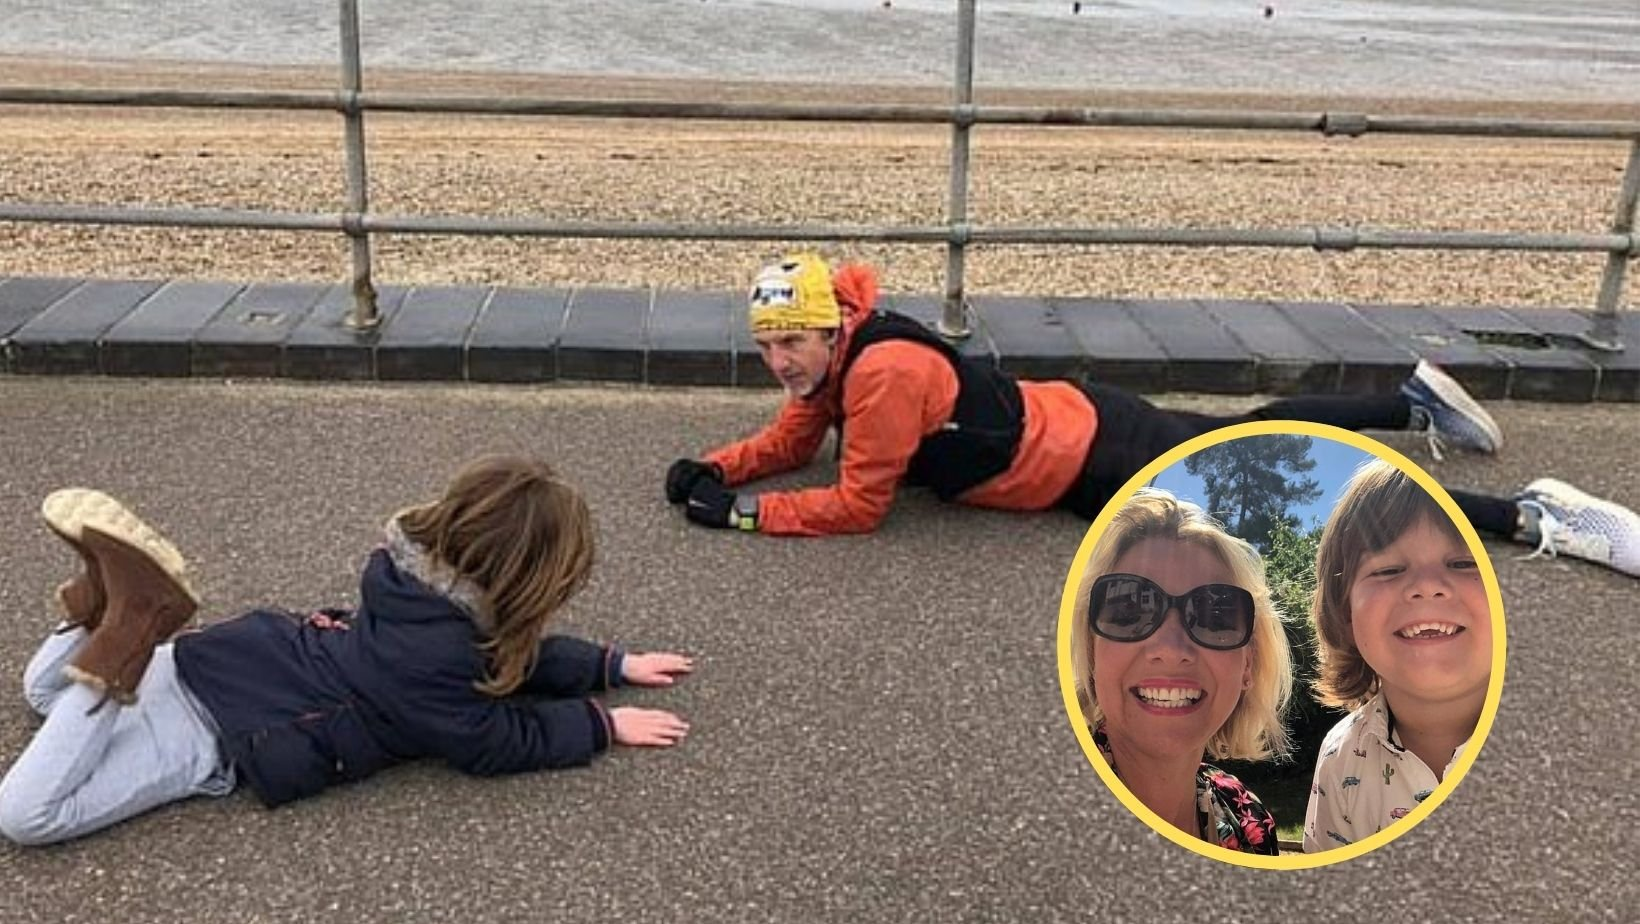 1 72.jpg?resize=1200,630 - Mom Praises 'Hero' Passerby For Lying On The Floor To Stop Her Autistic Son From Having A Meltdown